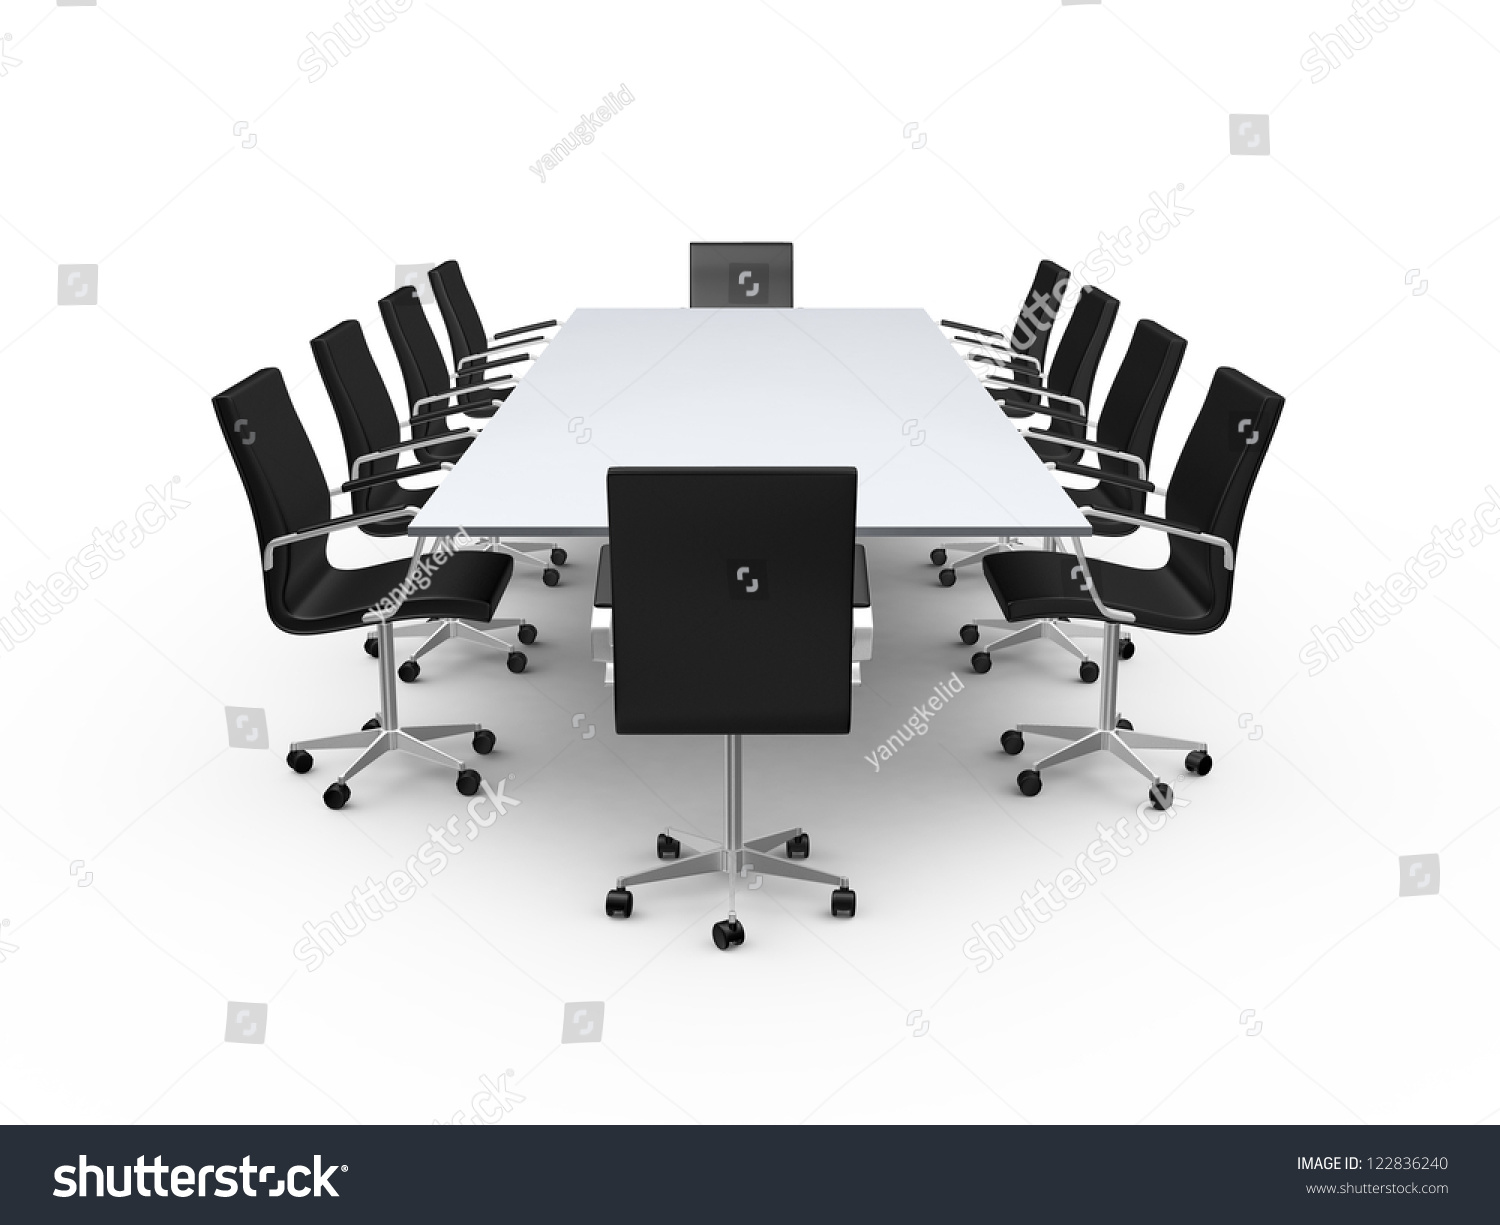 Conference Table And Black Office Chairs In Meeting Room Isolated On White Background